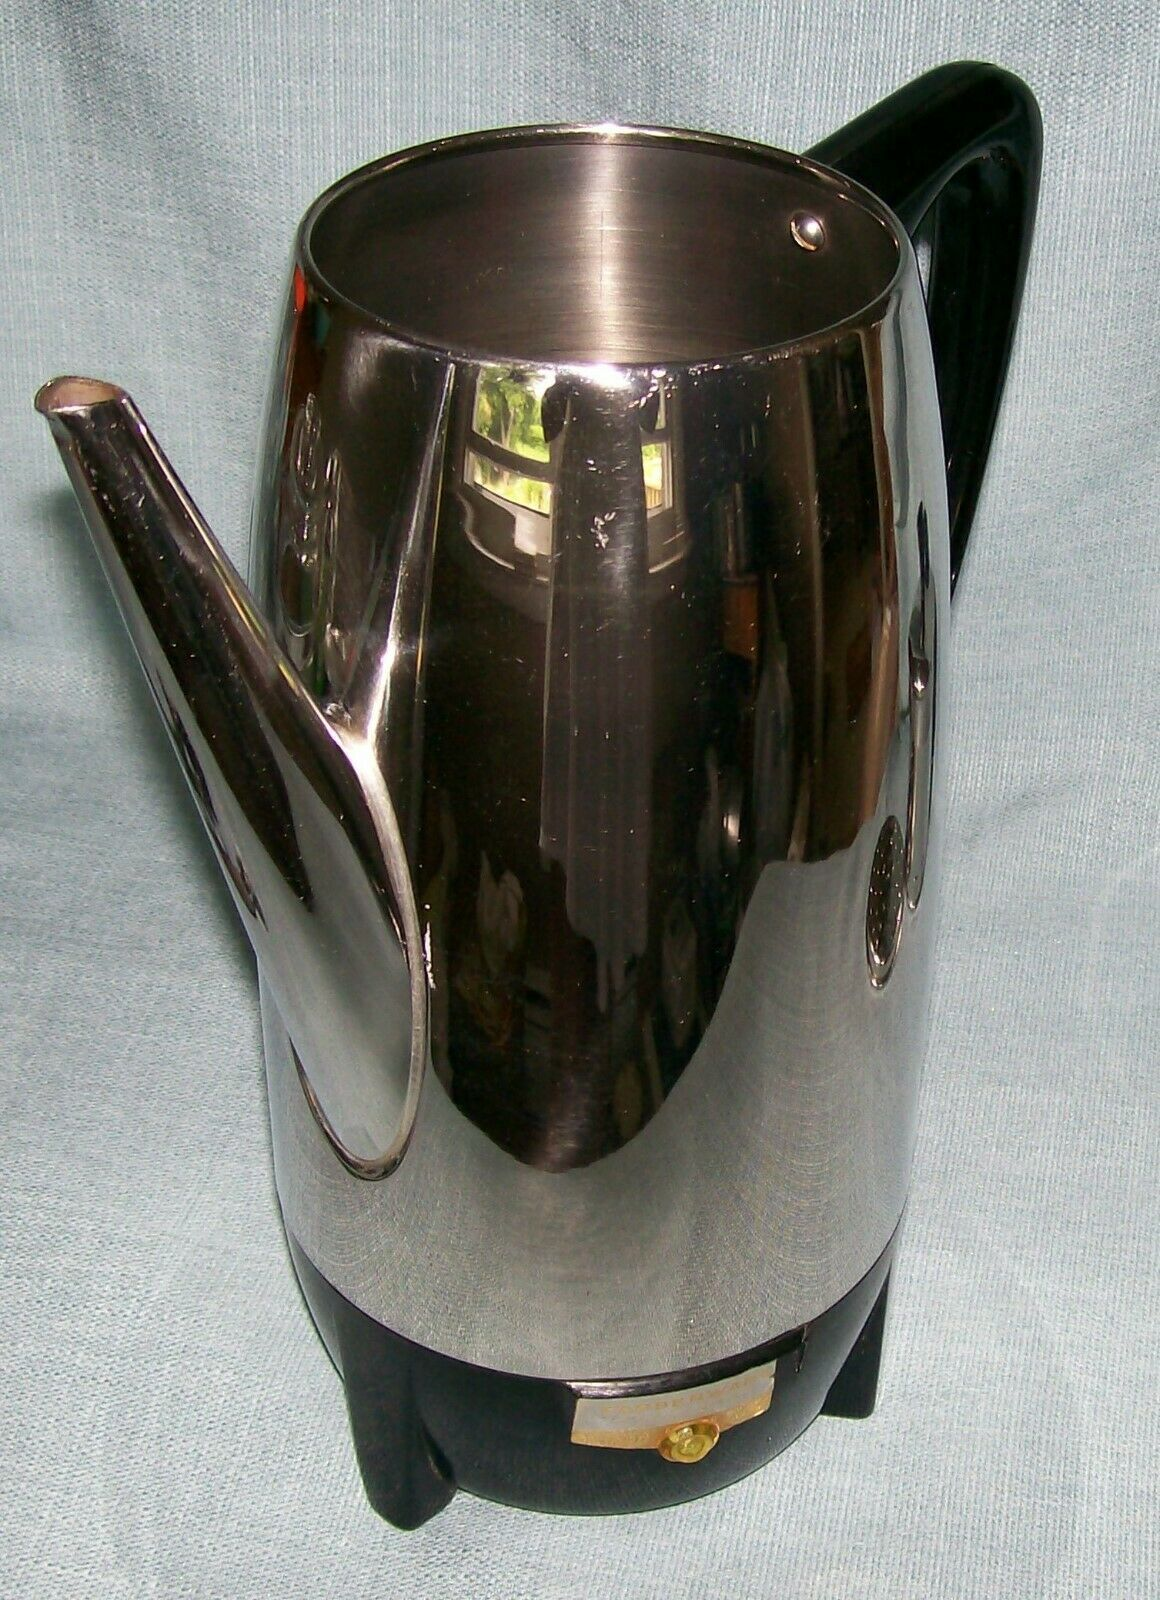 Vintage Farberware Superfast 12 Cup Percolator Coffee Pot 122 Automatic New York image 4